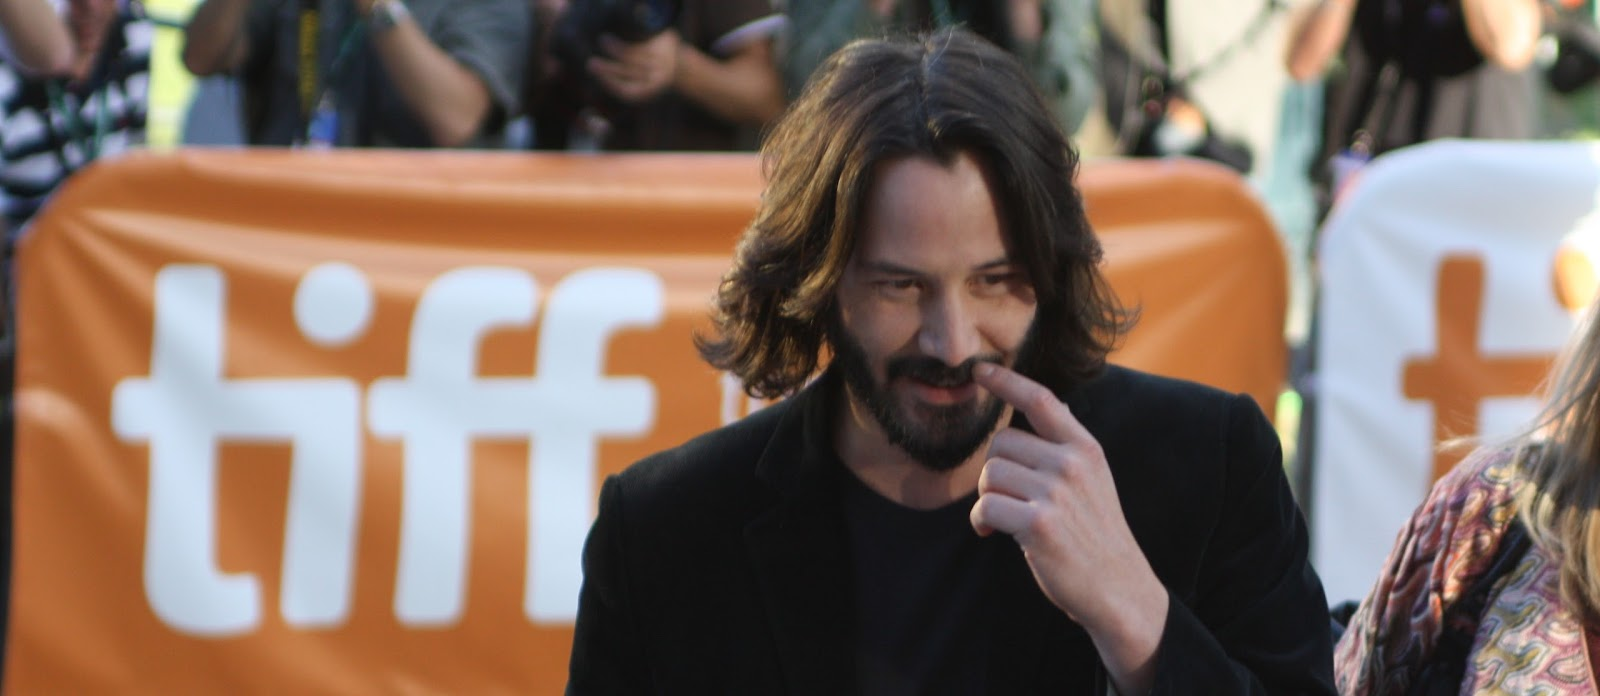 Keanu Reeves, Johnnie To among the first round of announced guests